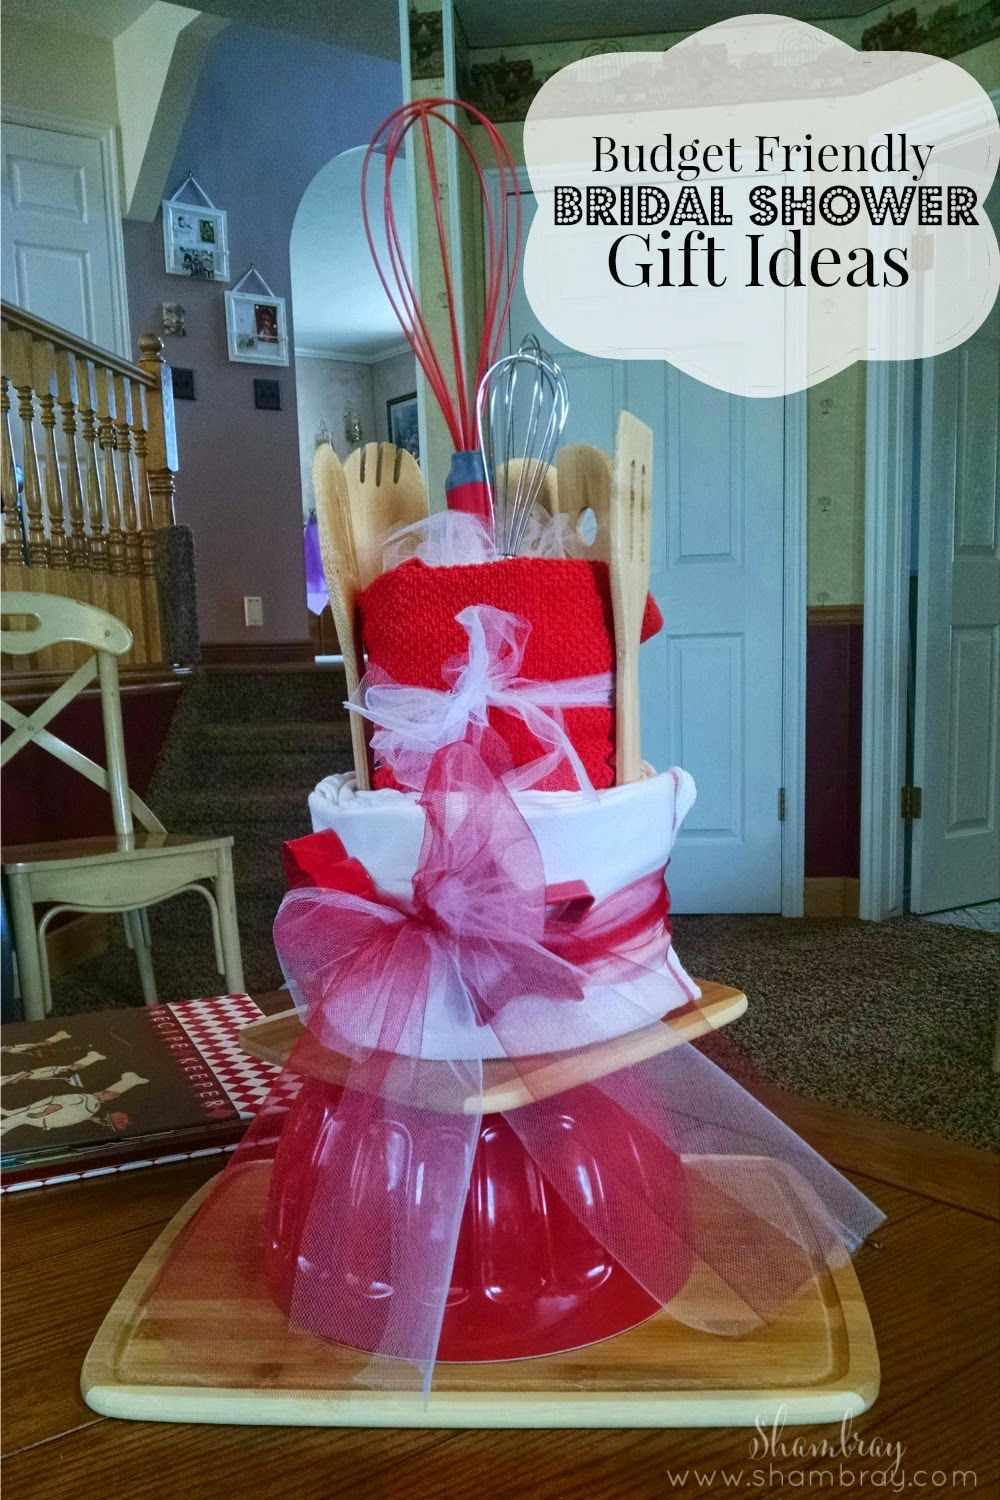 Budget Friendly Bridal Shower Gift Ideas Bridal shower